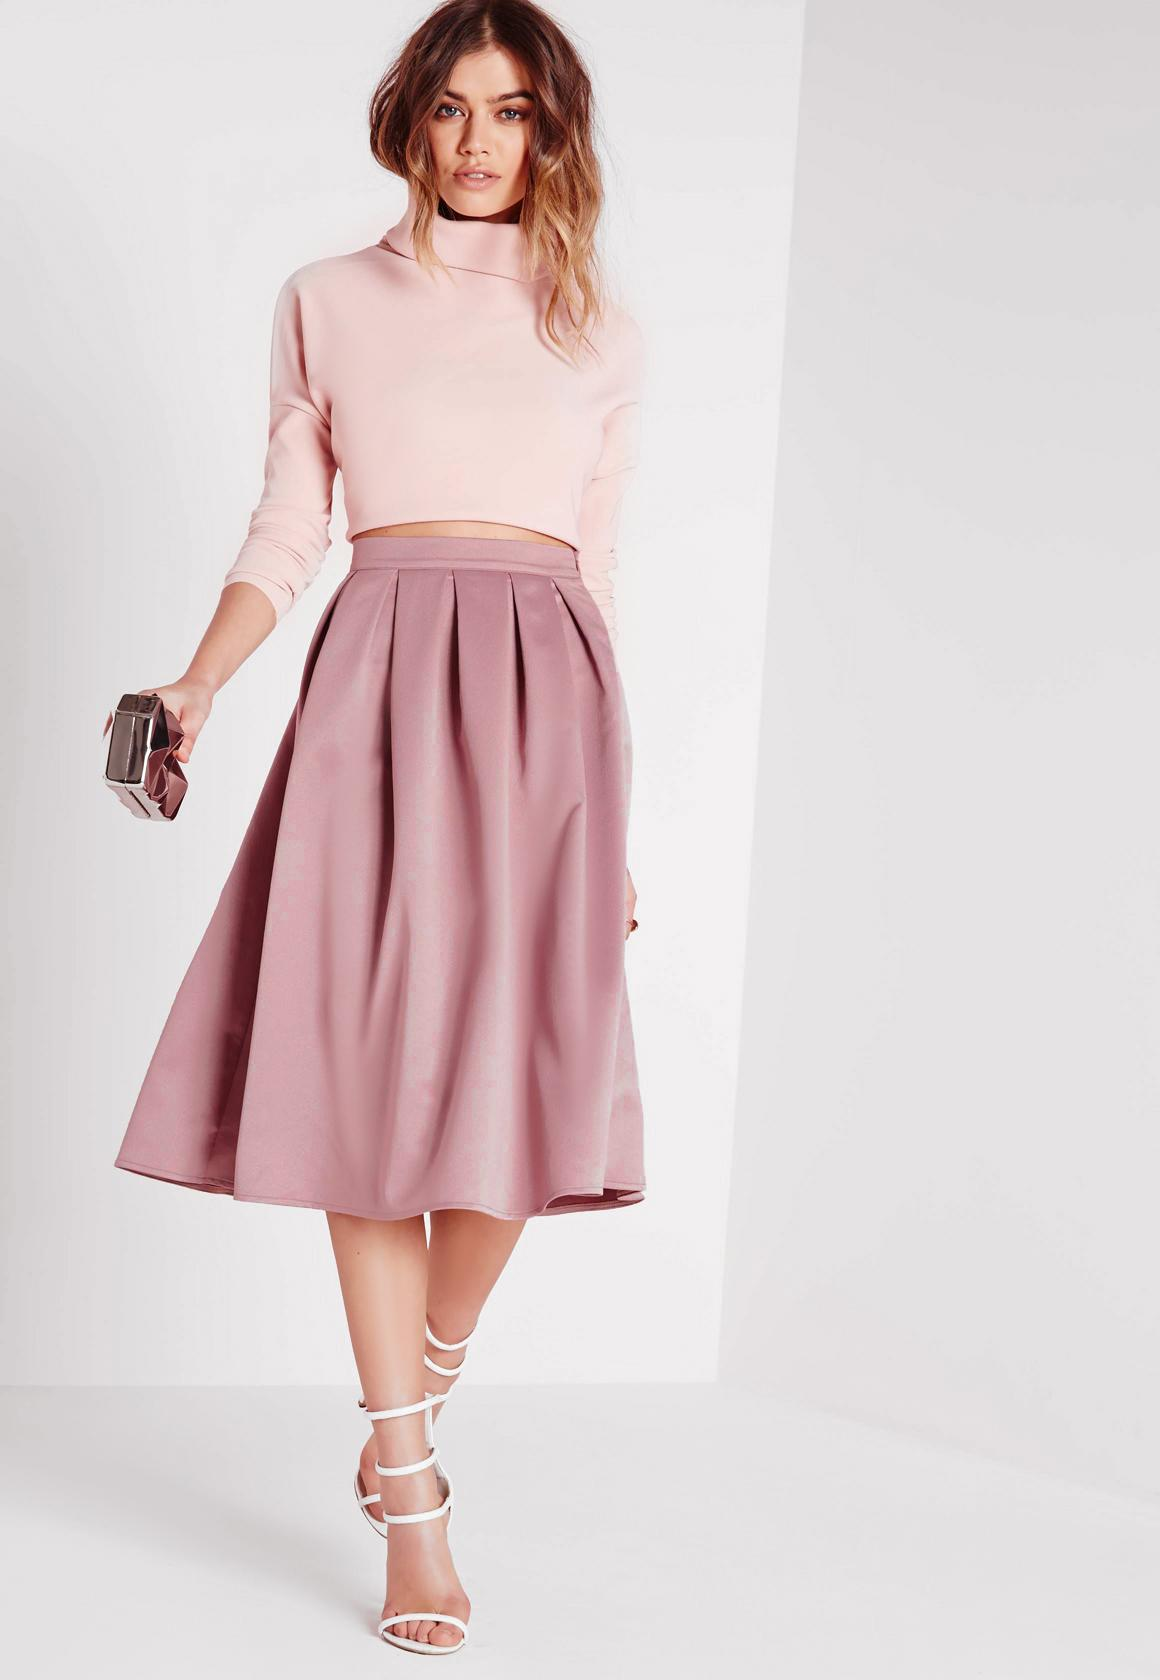 Get a pink skirt for your wardrobe